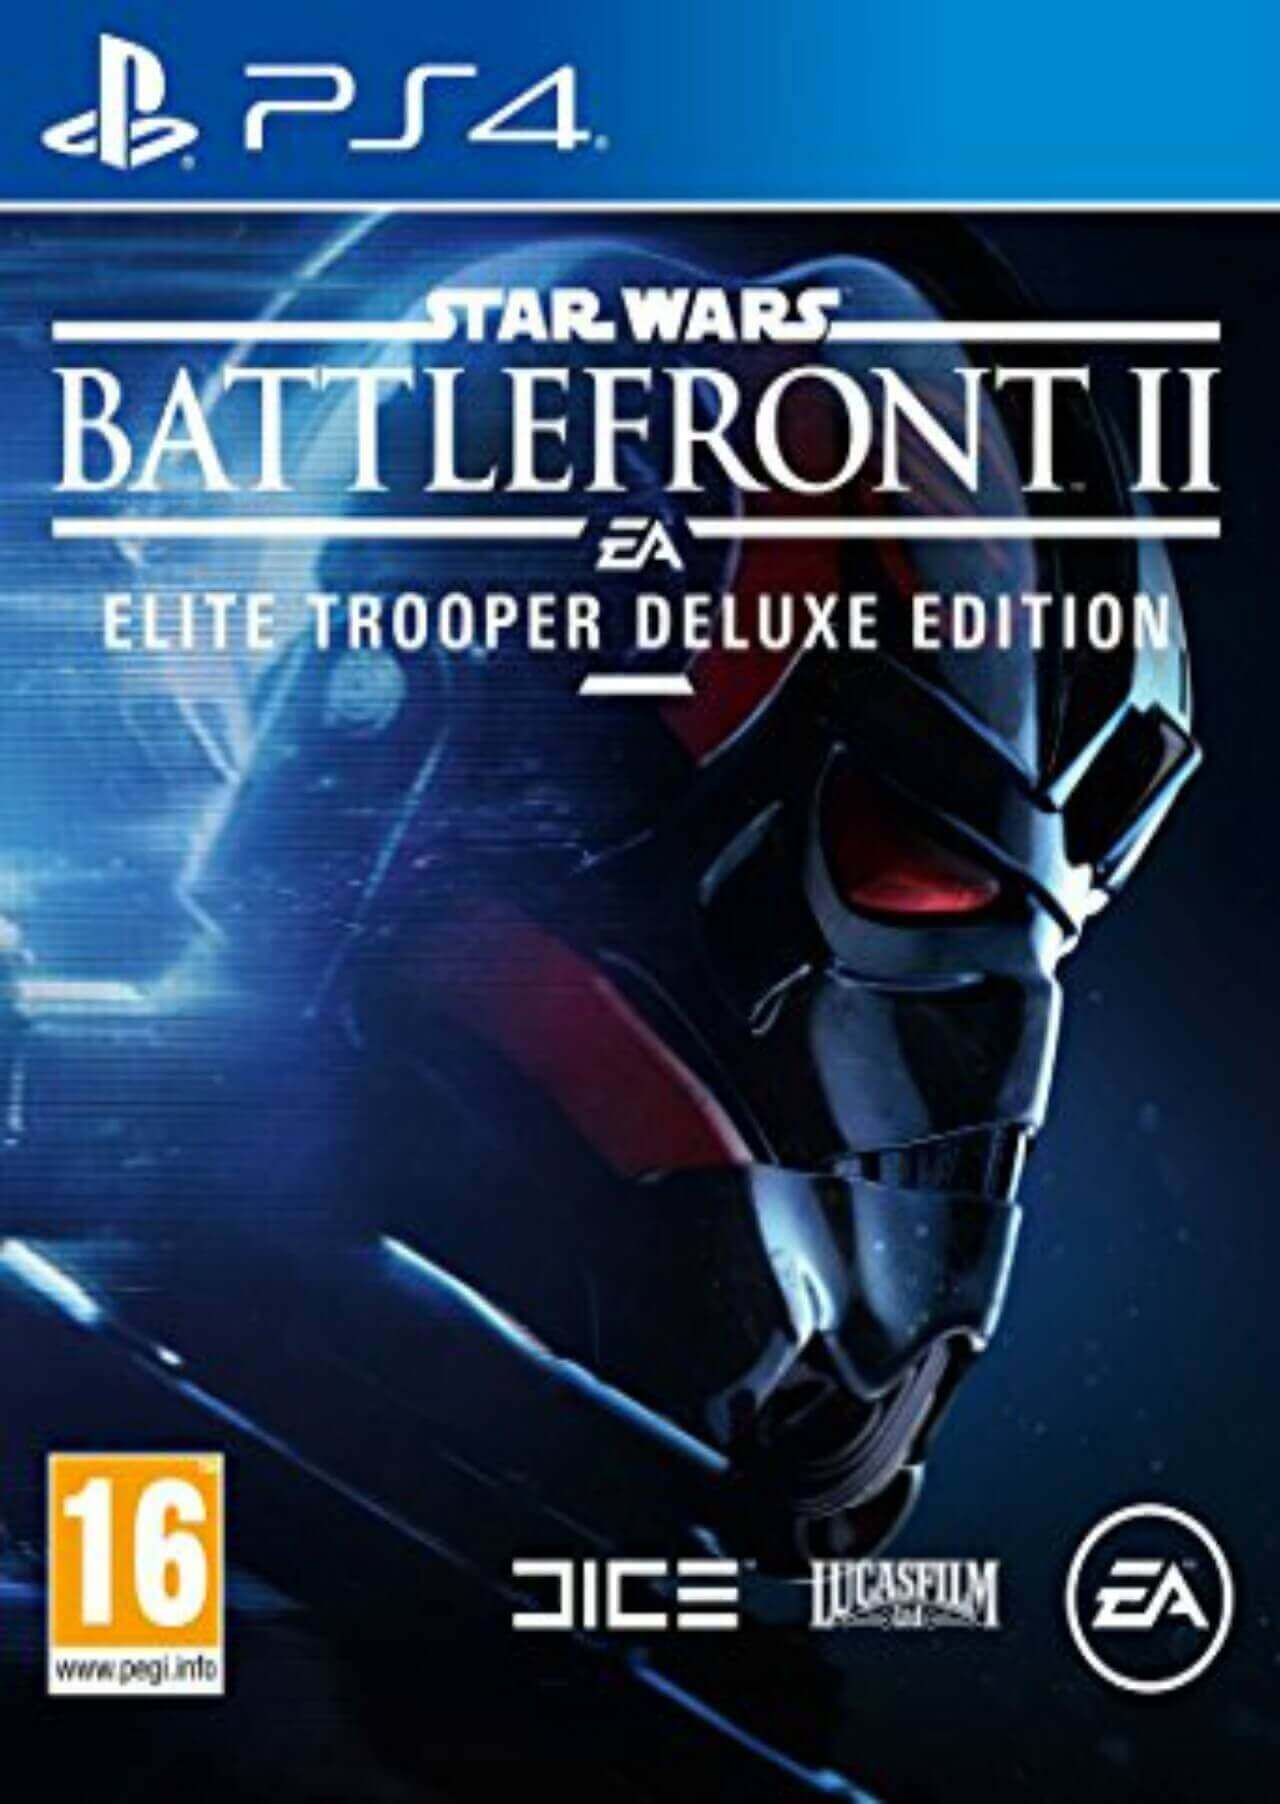 Star Wars: Battlefront II - Deluxe Edition PS4